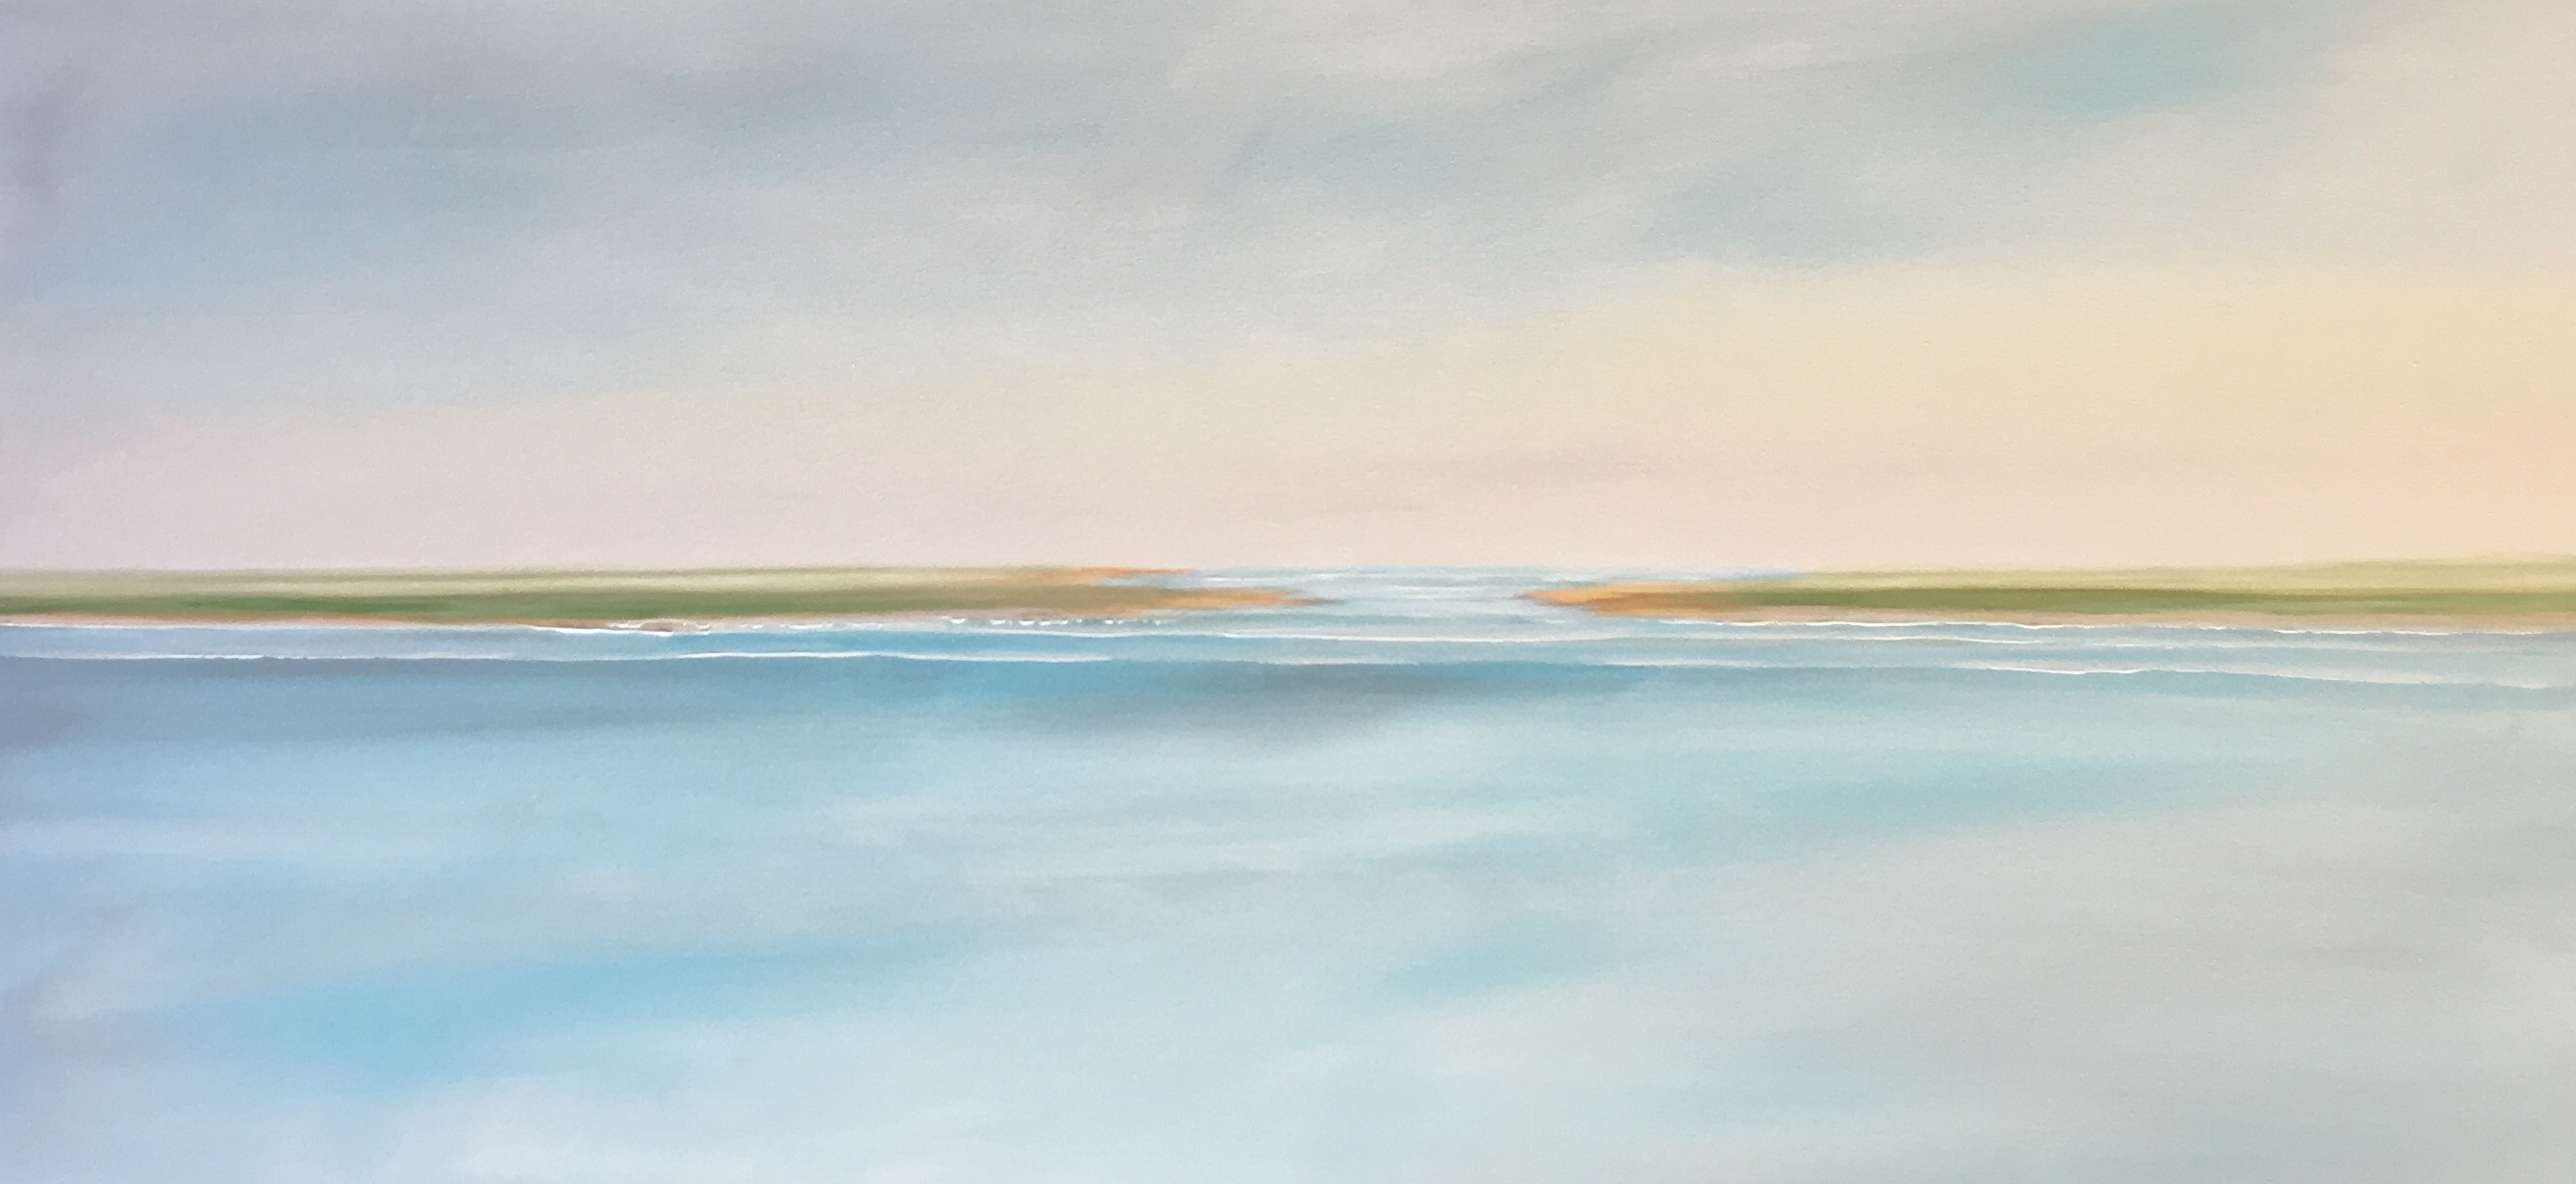 Paintings with a purpose! Becky O'Toole creates beautiful and serene seascapes inspired by her life in Scituate. Read more about her incredible story. #interview #creativity #coastal #seascapes